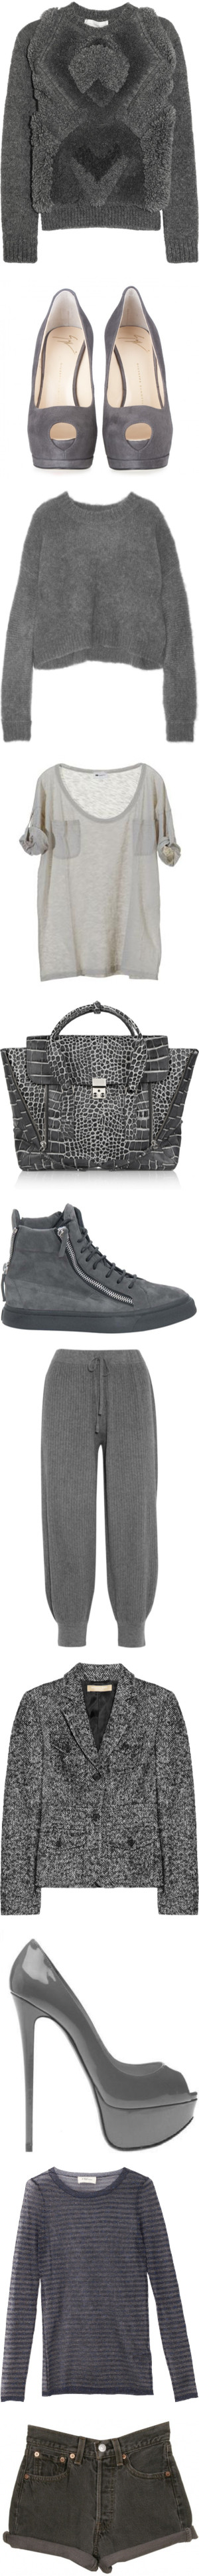 """100 Shades of Grey"" by llsbo ❤ liked on Polyvore"